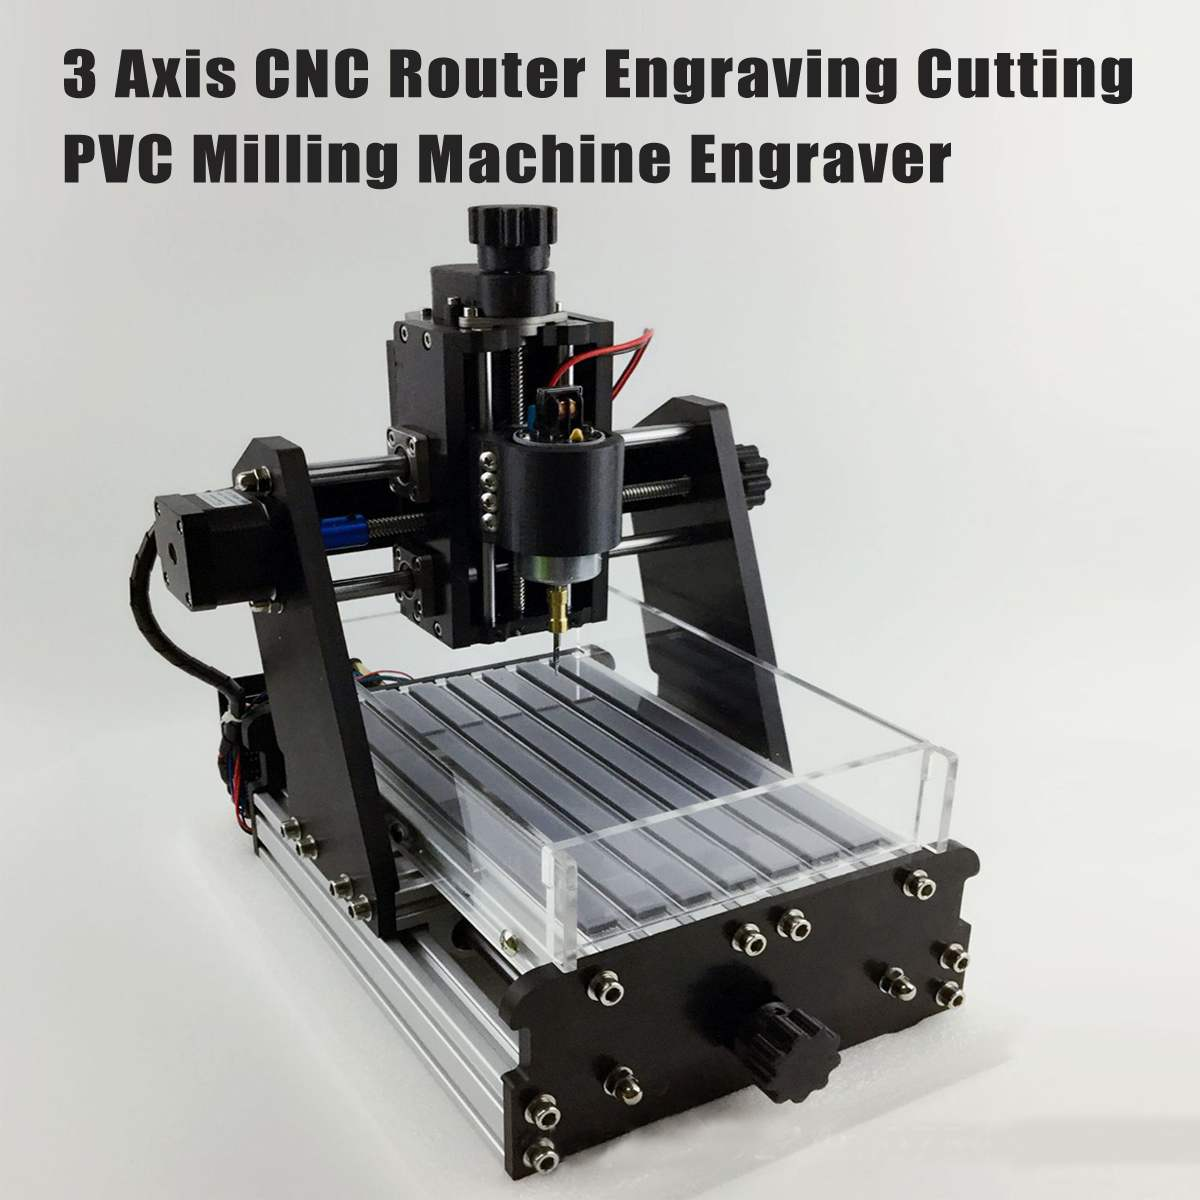 500mw 3 Axis CNC Router DIY Laser Engraver Machine Engraving Machine Wood Router Mini Marking Machine Advanced Toys500mw 3 Axis CNC Router DIY Laser Engraver Machine Engraving Machine Wood Router Mini Marking Machine Advanced Toys